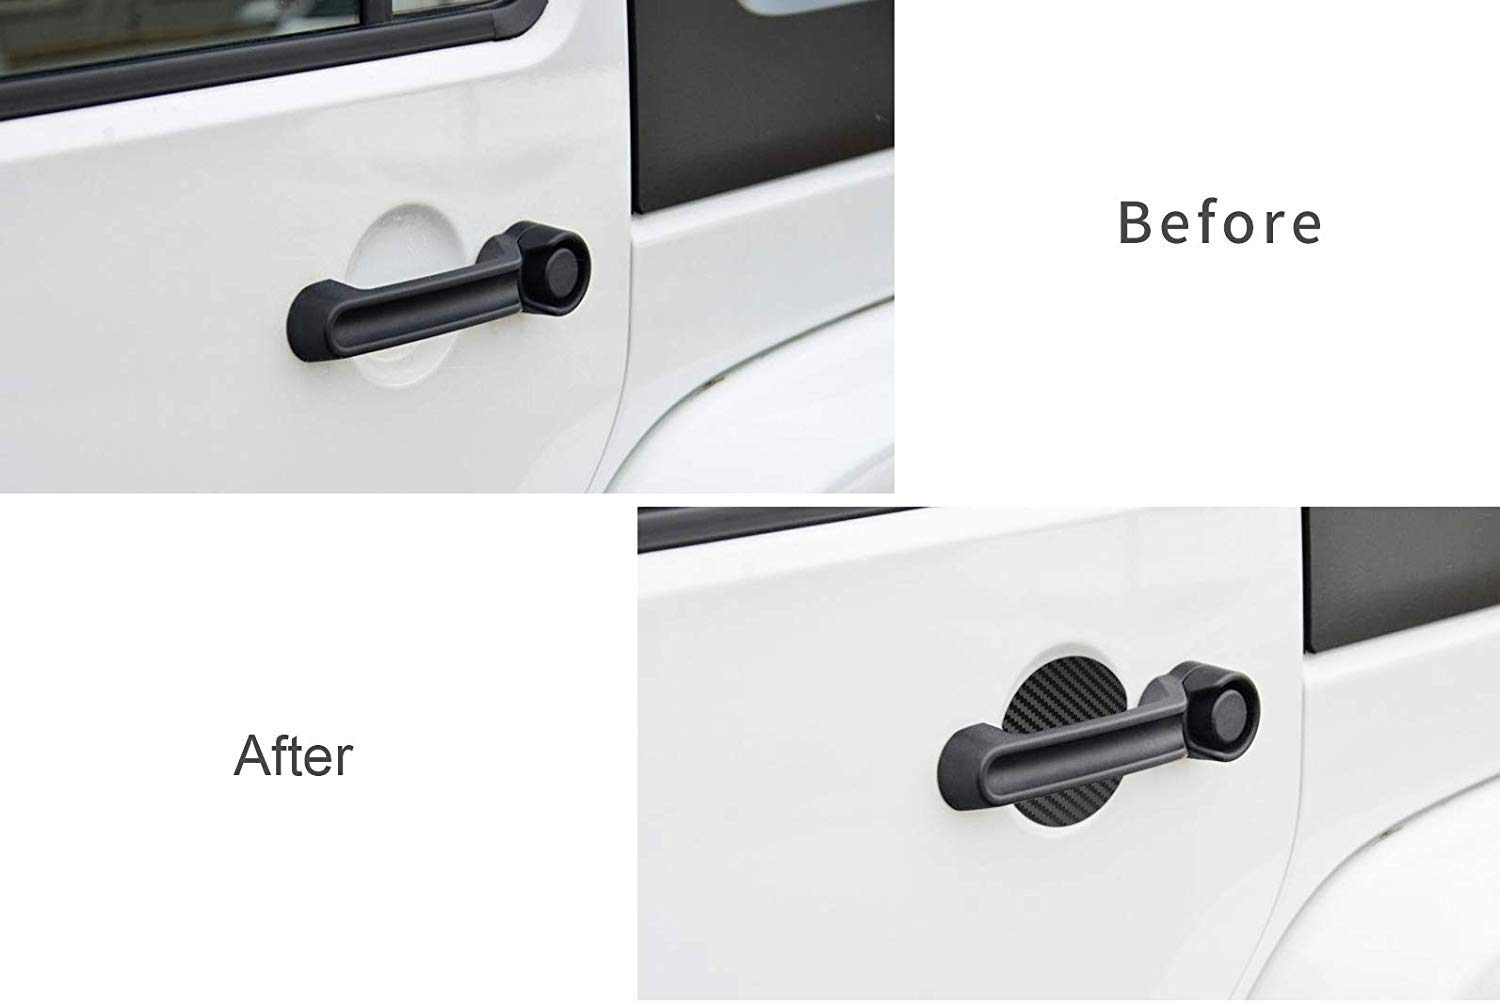 MLING 4 PCS Magnetic Car Door Handle Insert Cover Anti Scratches Guard Paint Protector Compatible for Wrangler JK